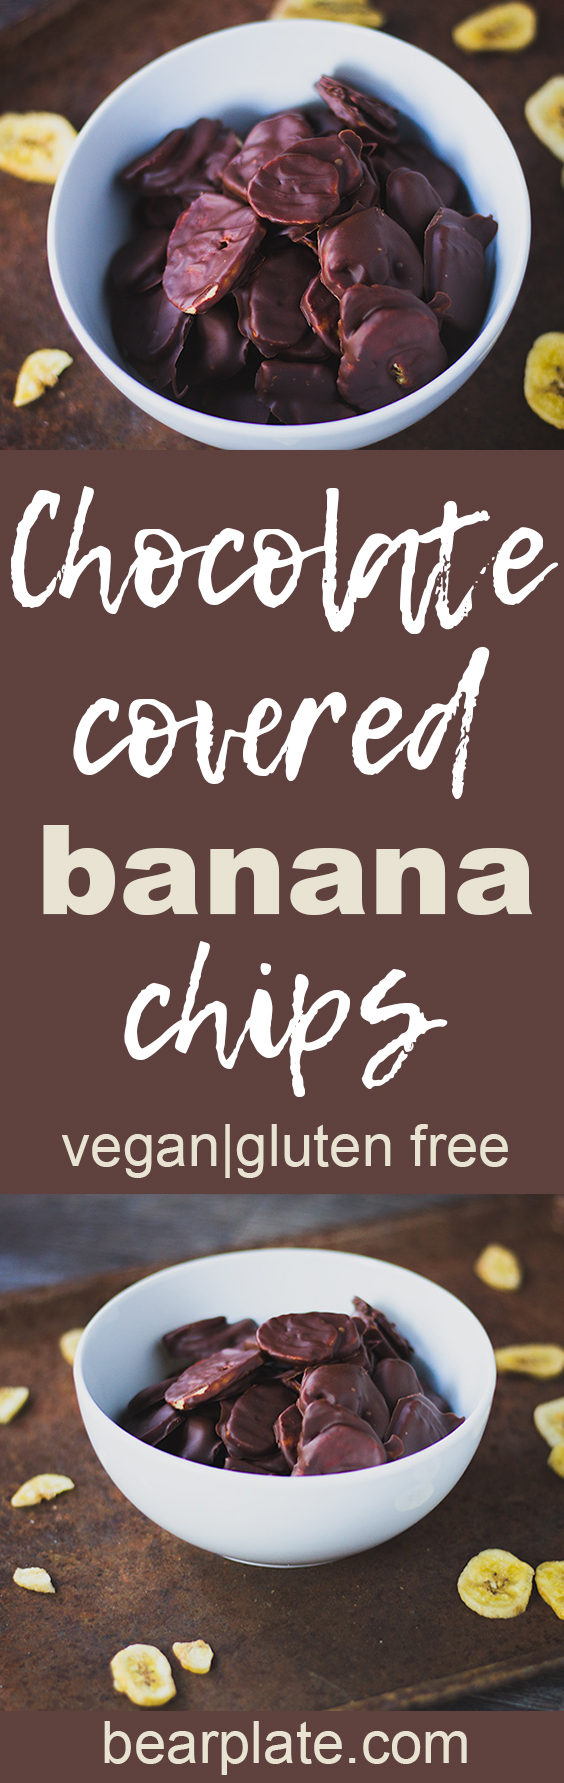 DELICIOUS!!! Chocolate Covered Banana Chips! #vegan #glutenfree #plantbased